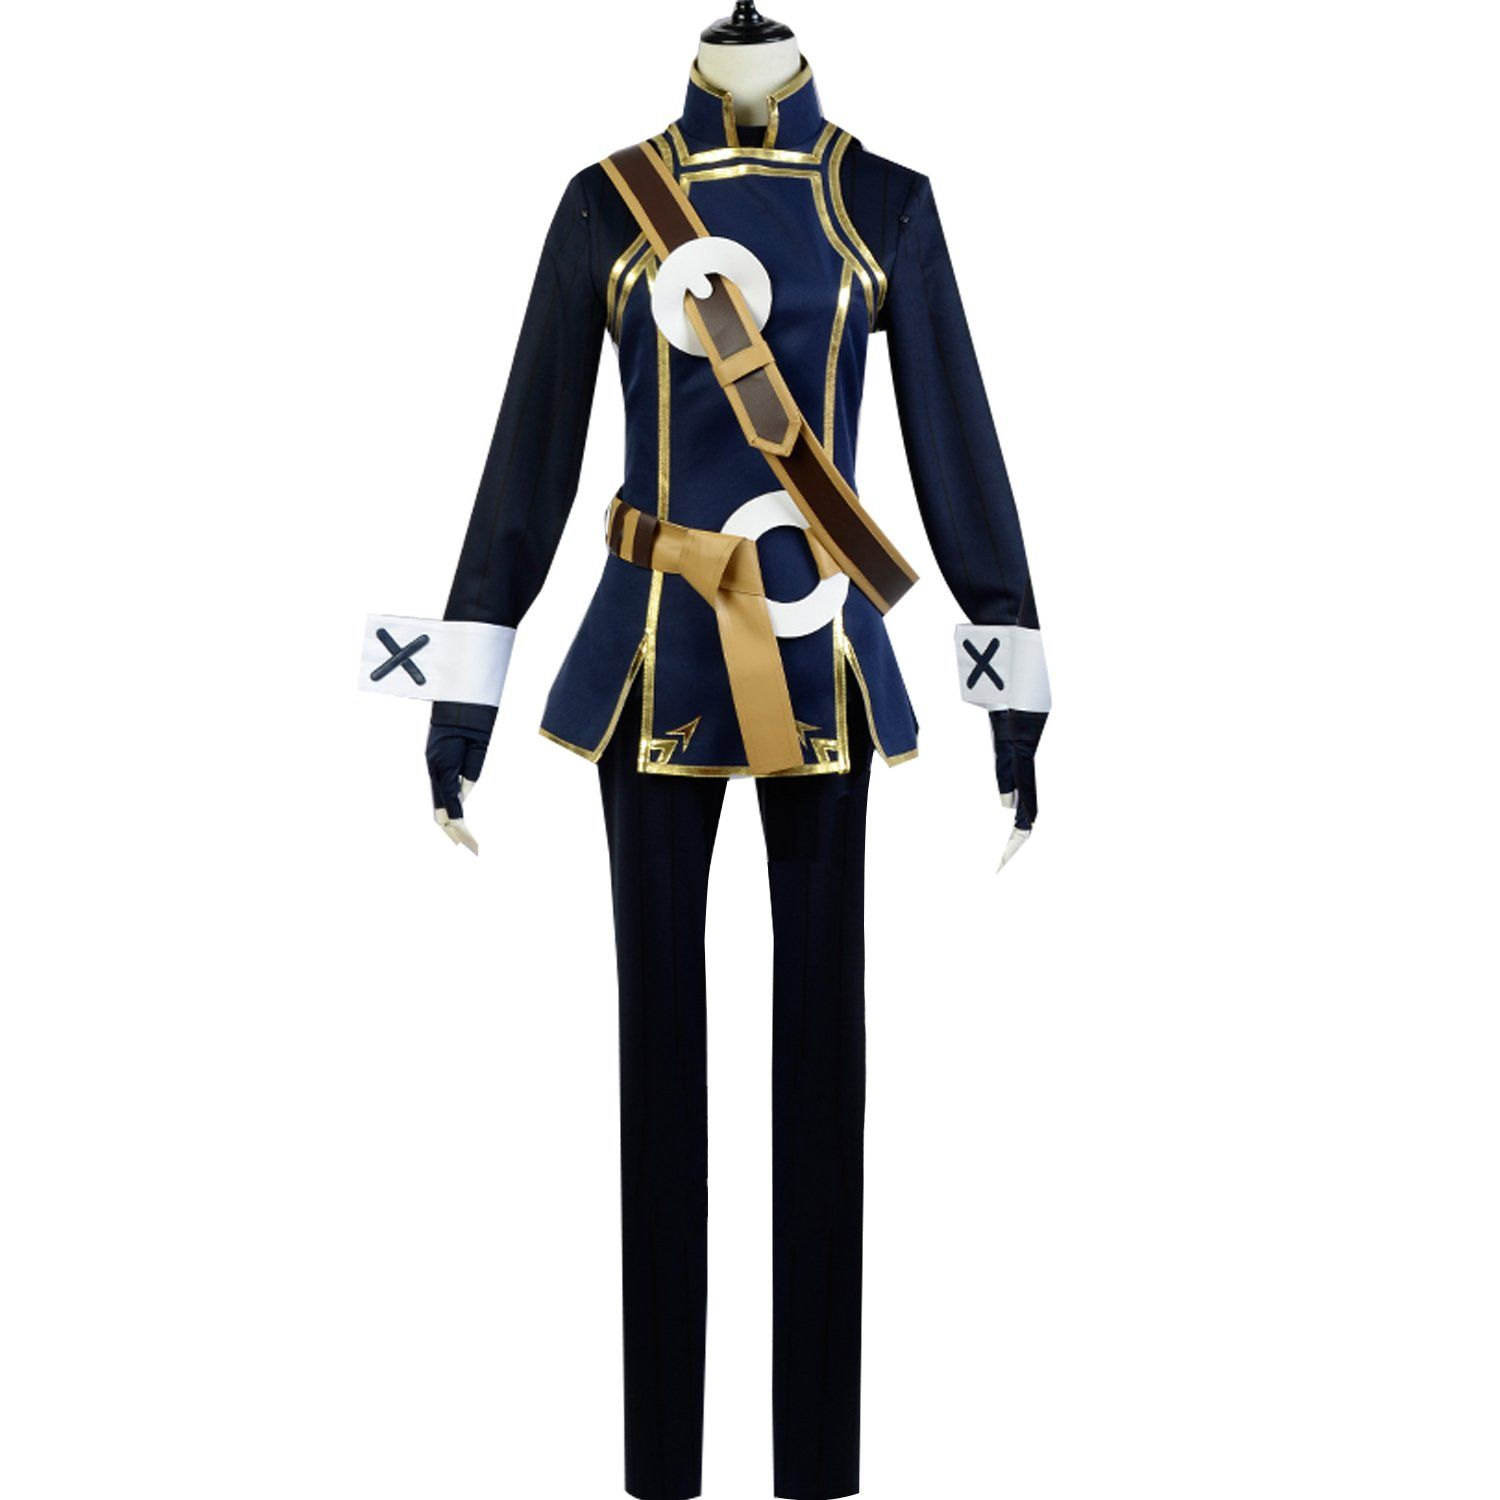 Anime lucina cosplay costume battle uniform outfit